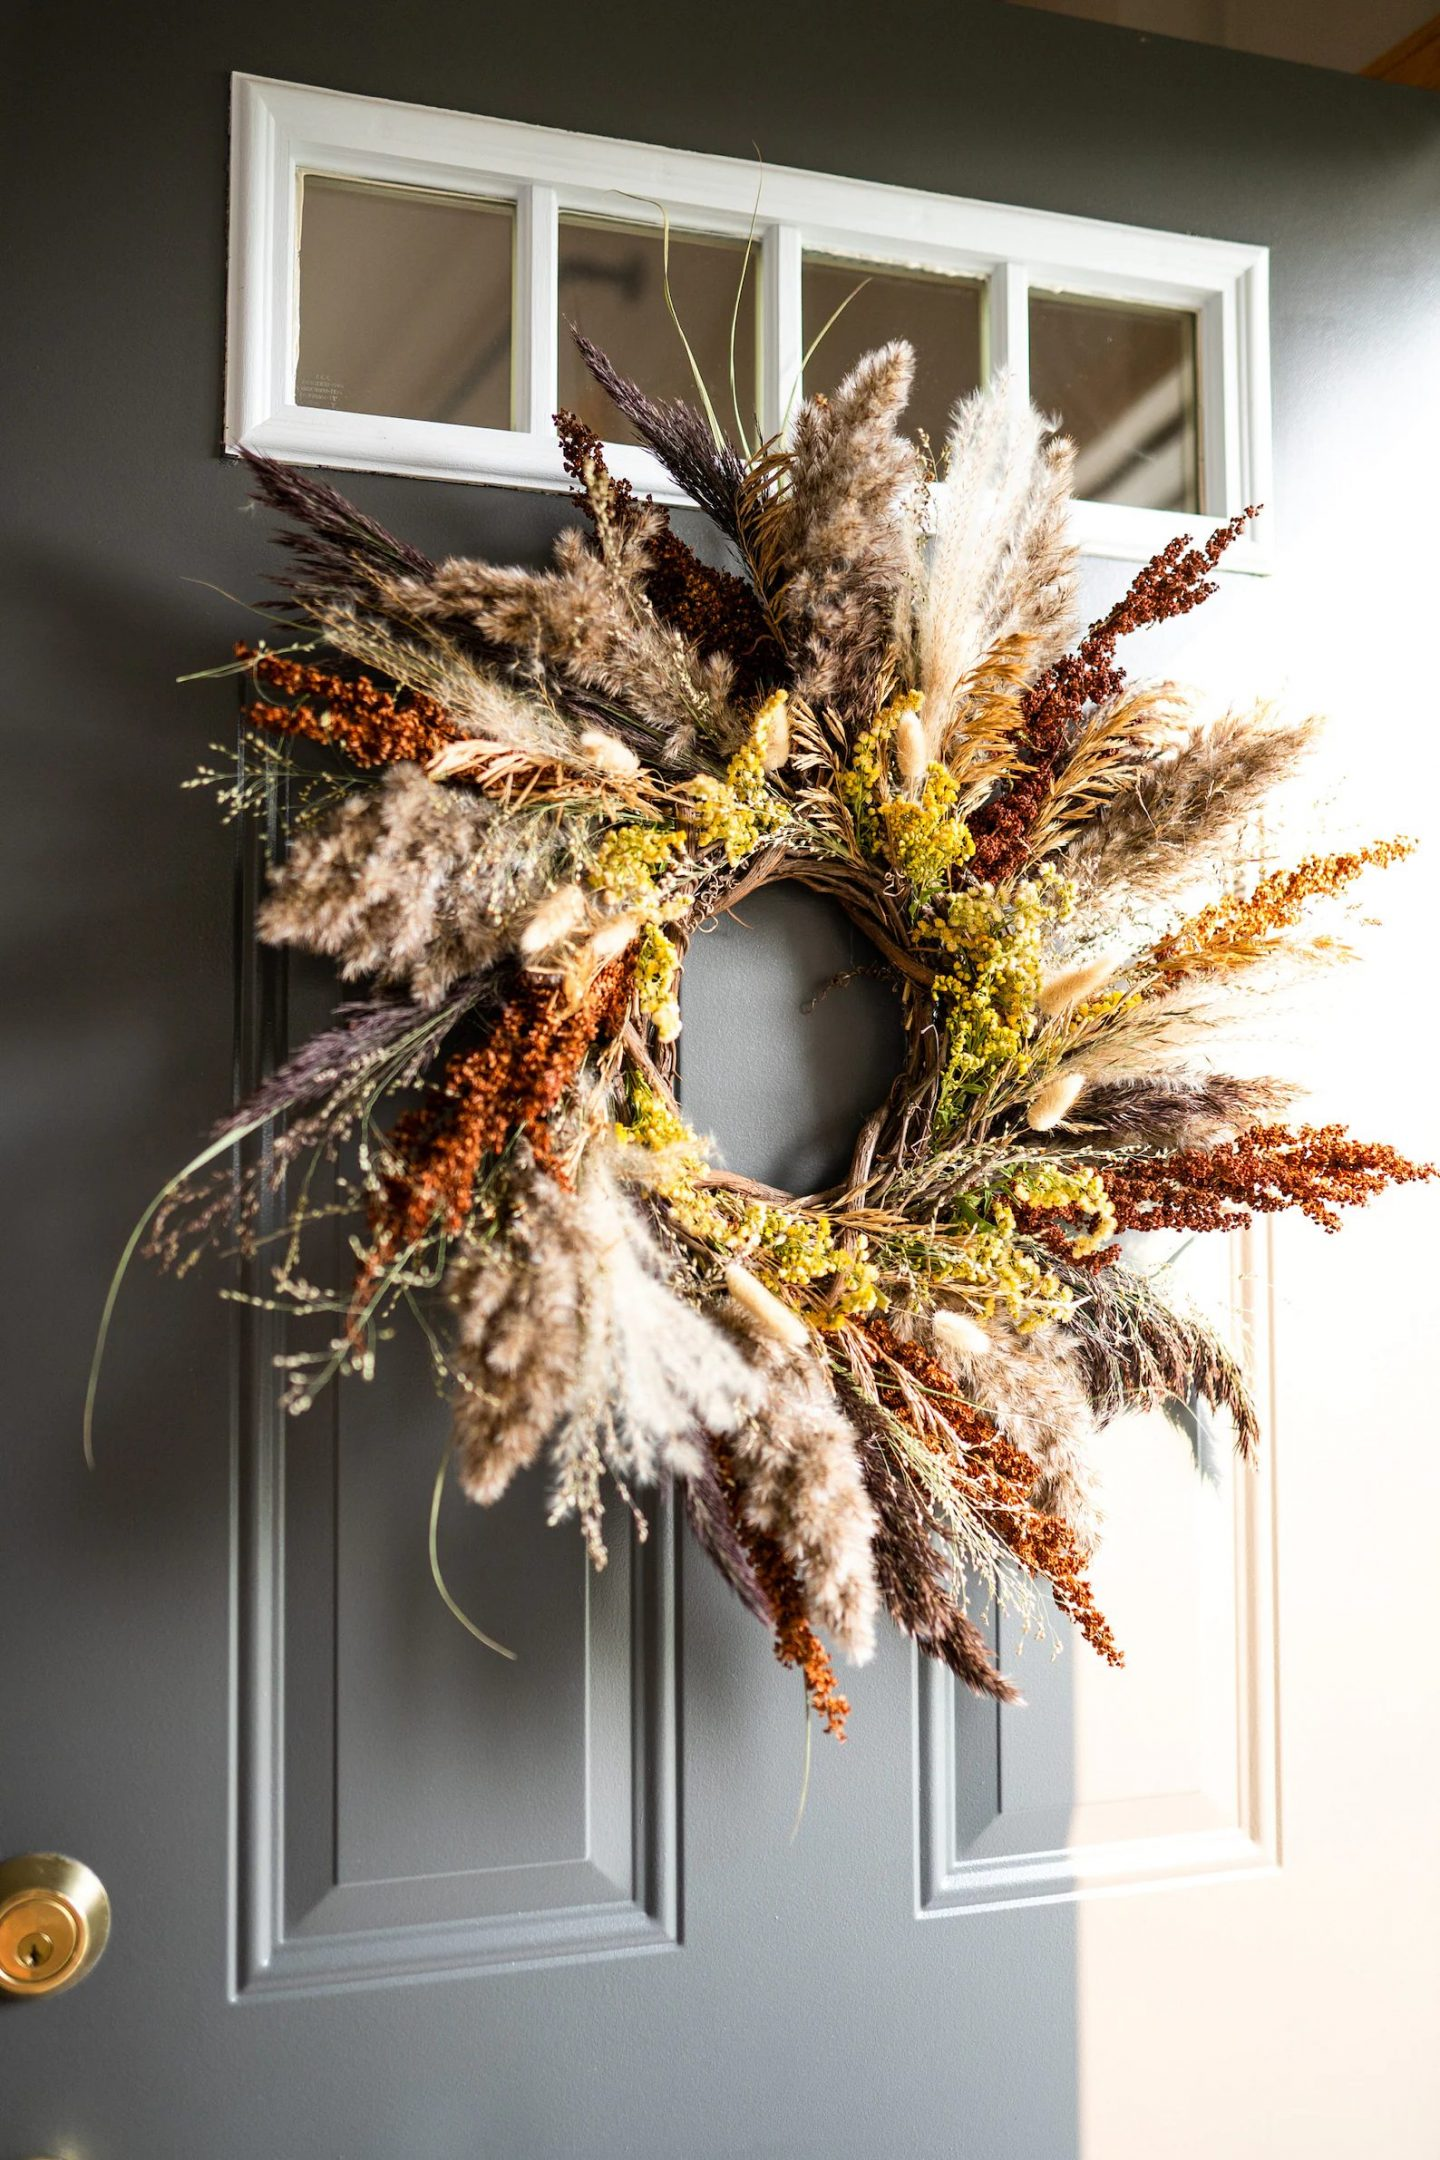 Autumn wreath with dried flowers and pampas grass